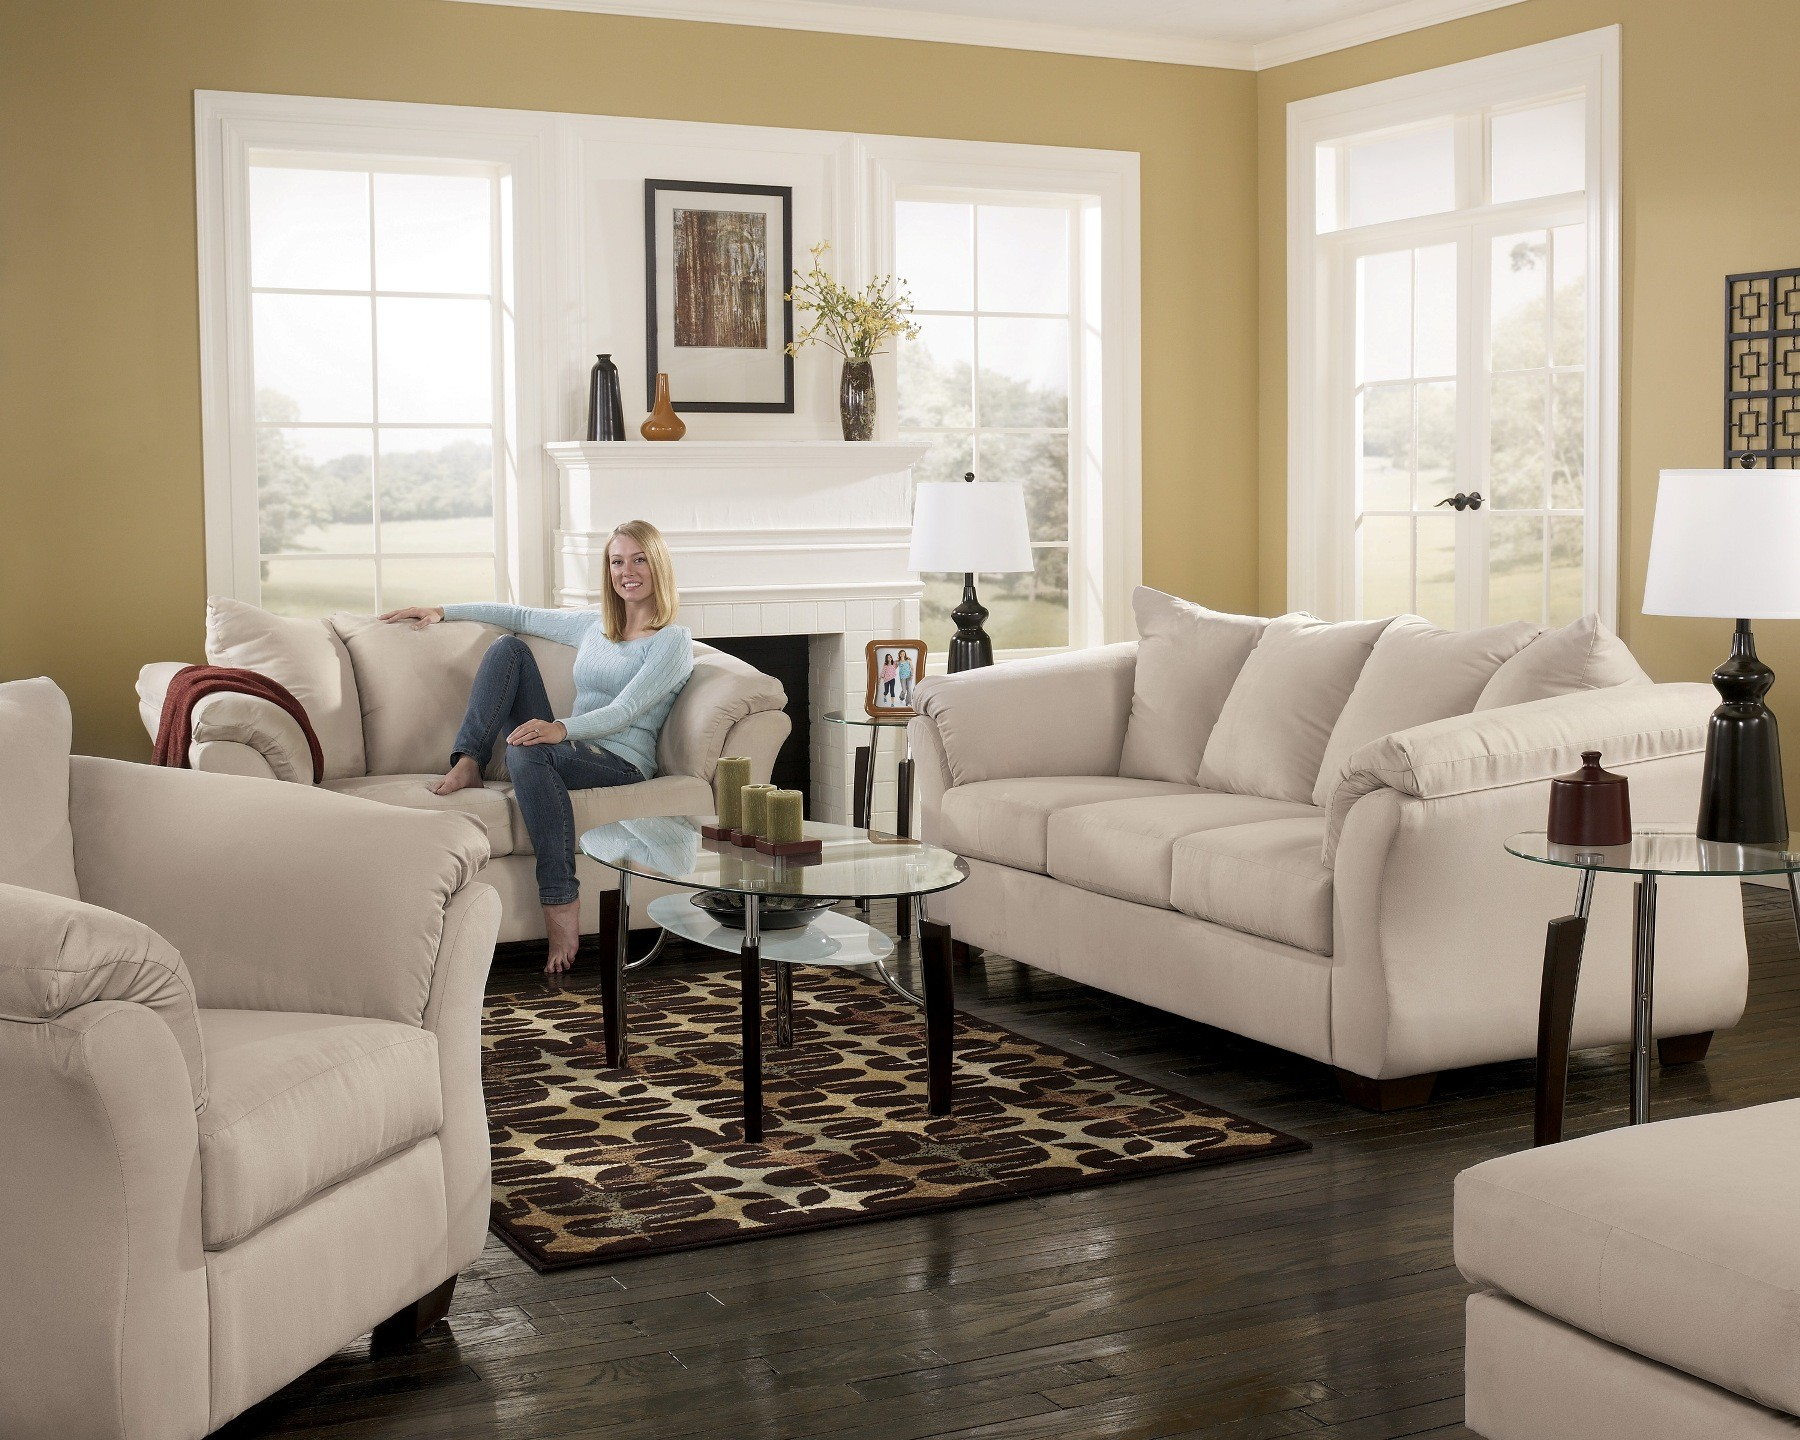 darcy stone living room set from ashley 75000 coleman furniture rh colemanfurniture com